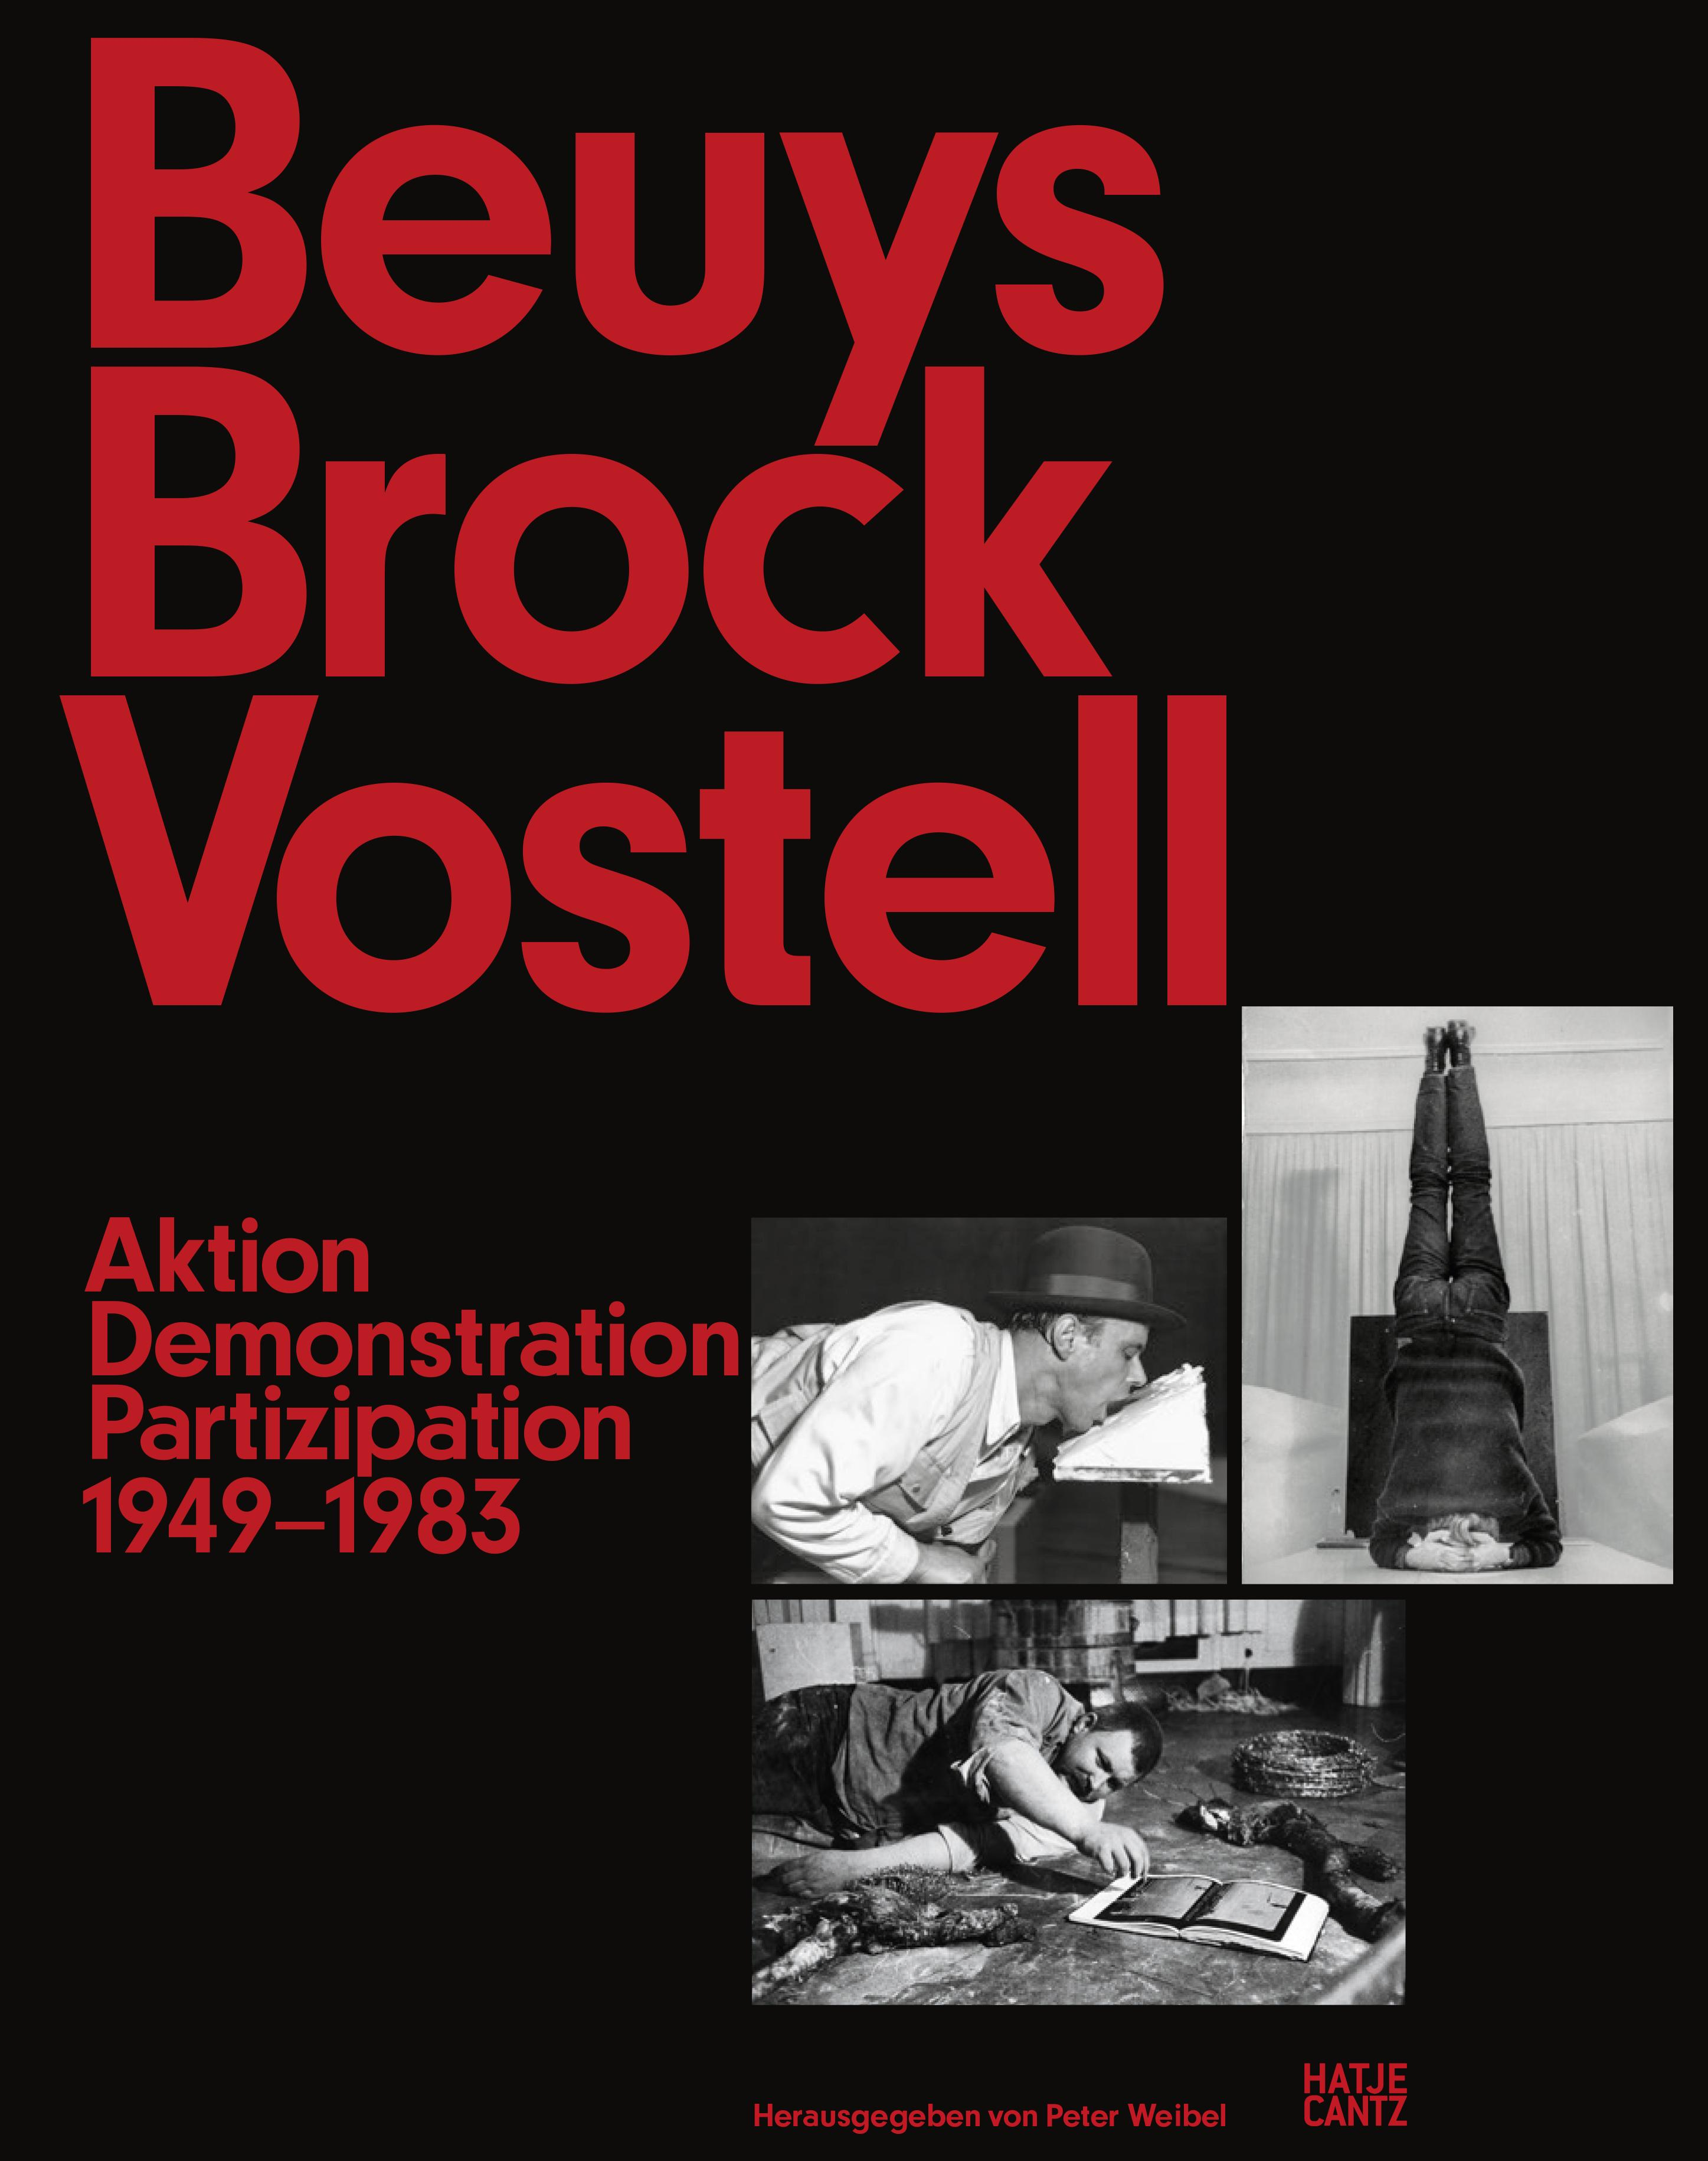 Beuys Brock Vostell. Aktion Partizipation Demonstration